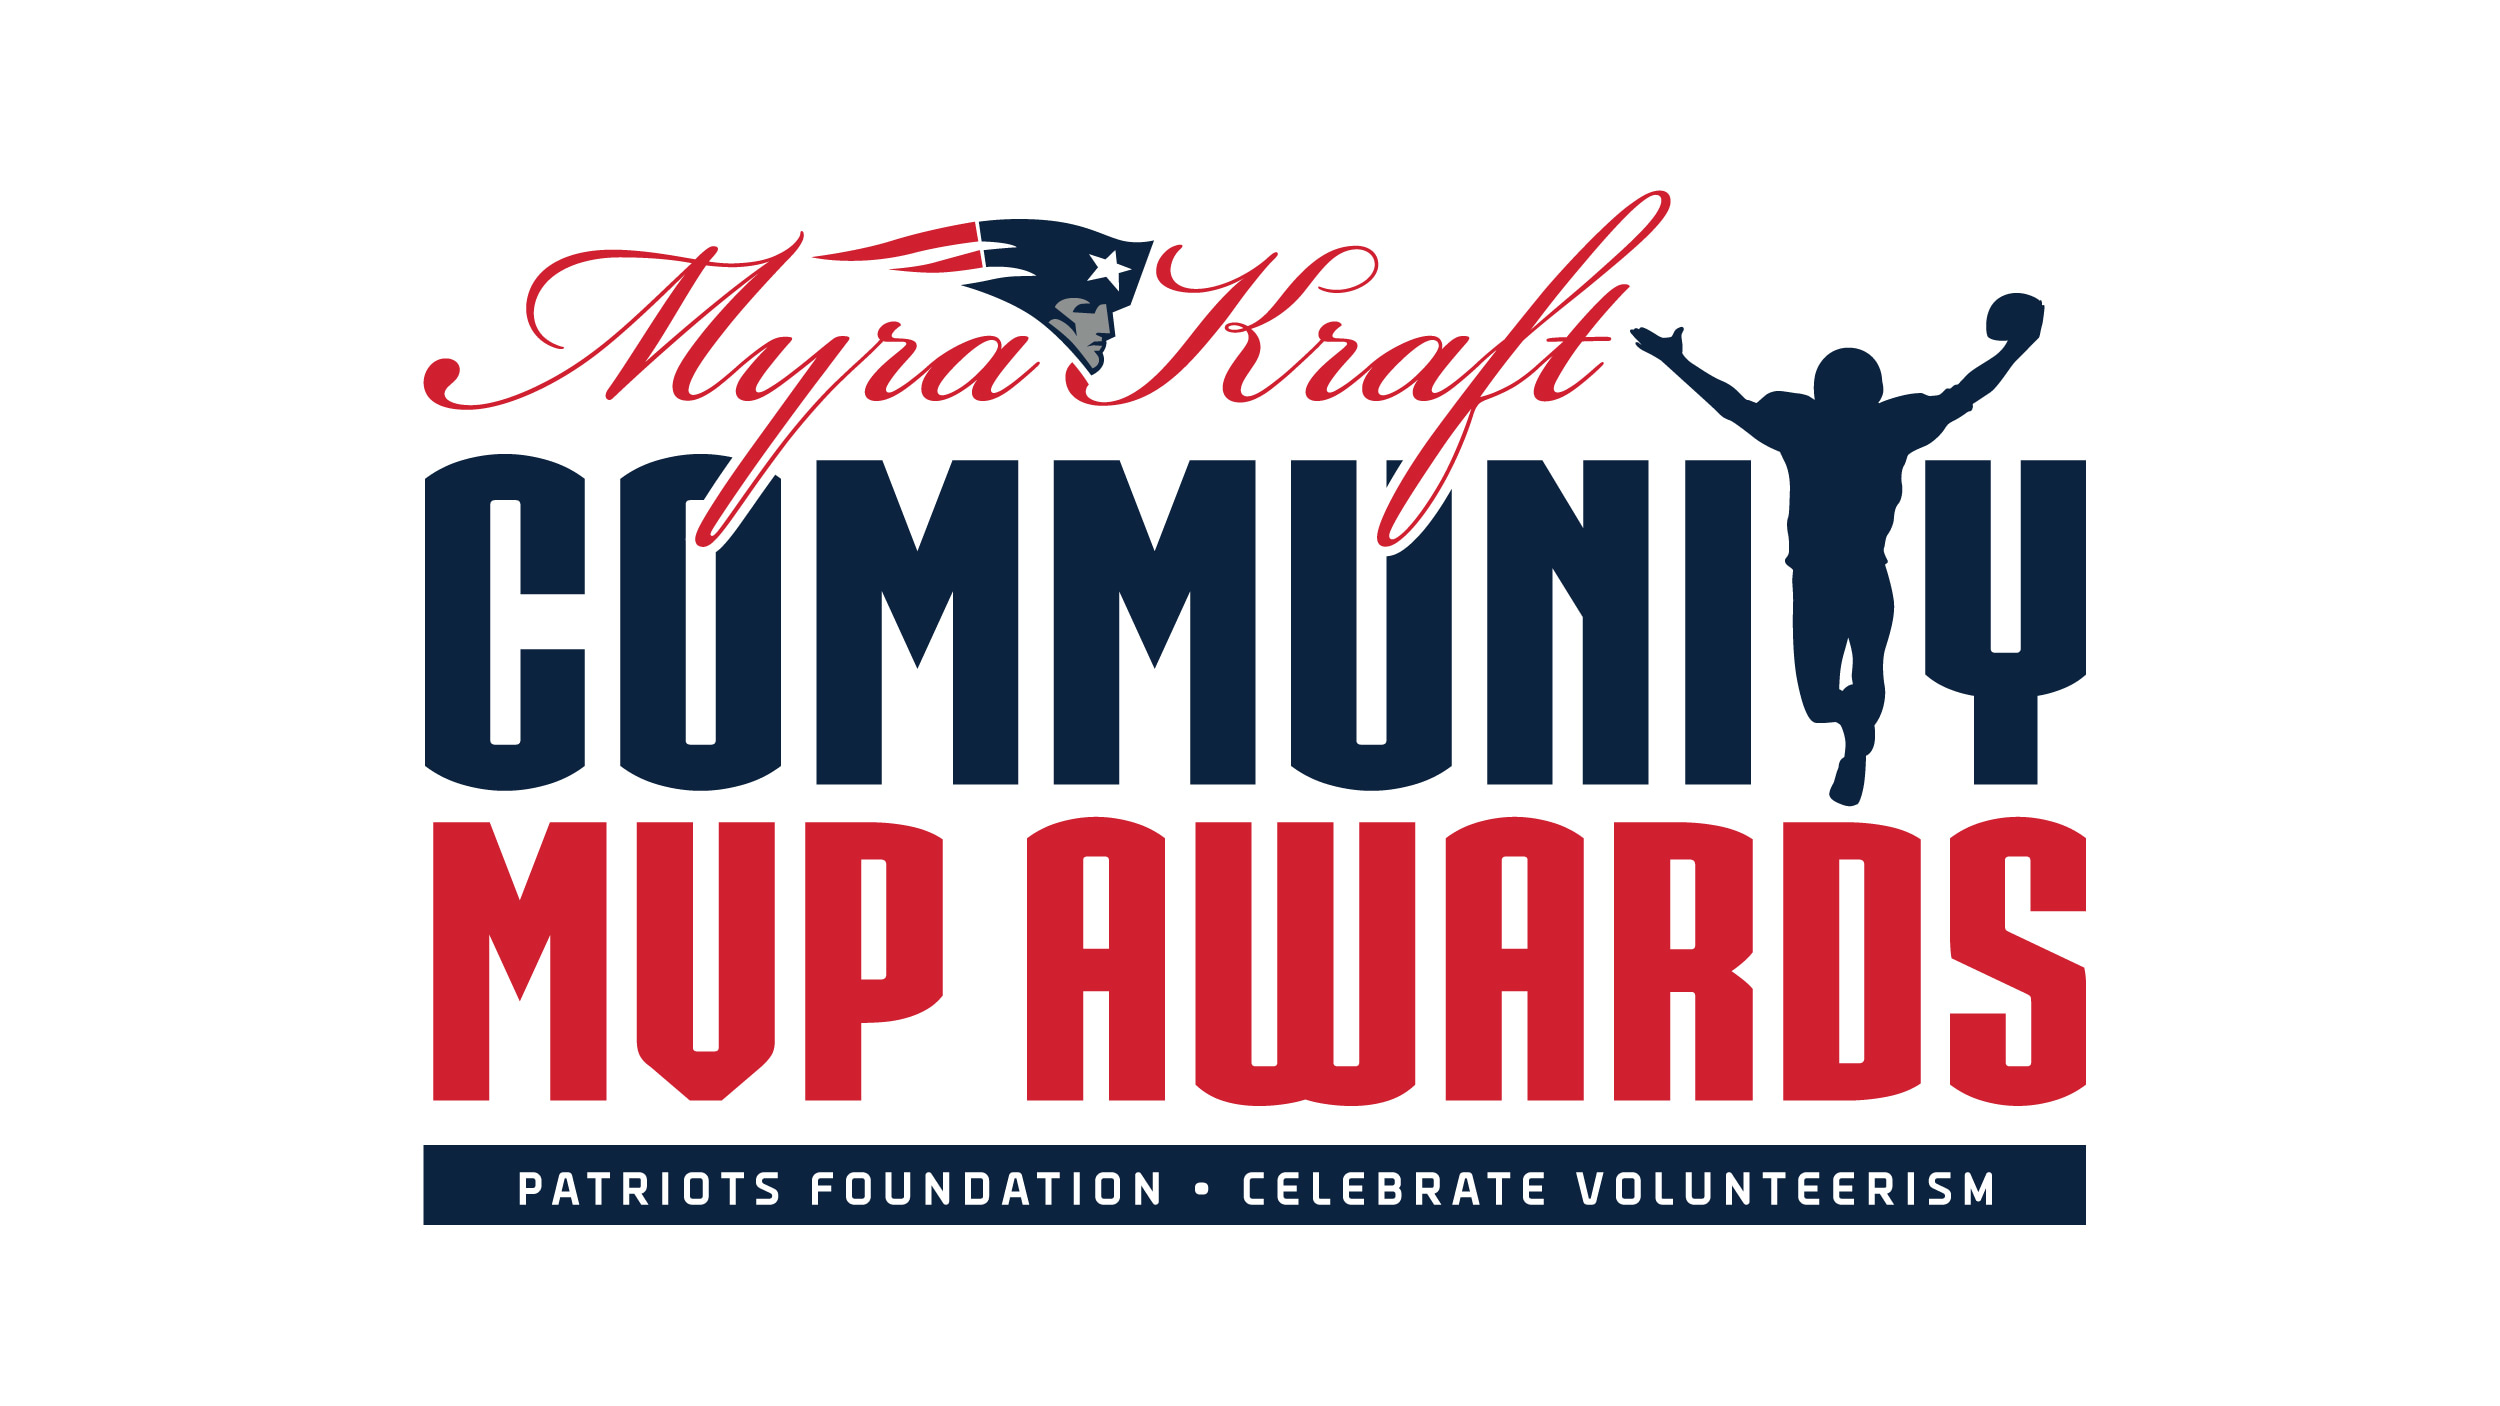 MYRA KRAFT COMMUNITY MVP AWARDS